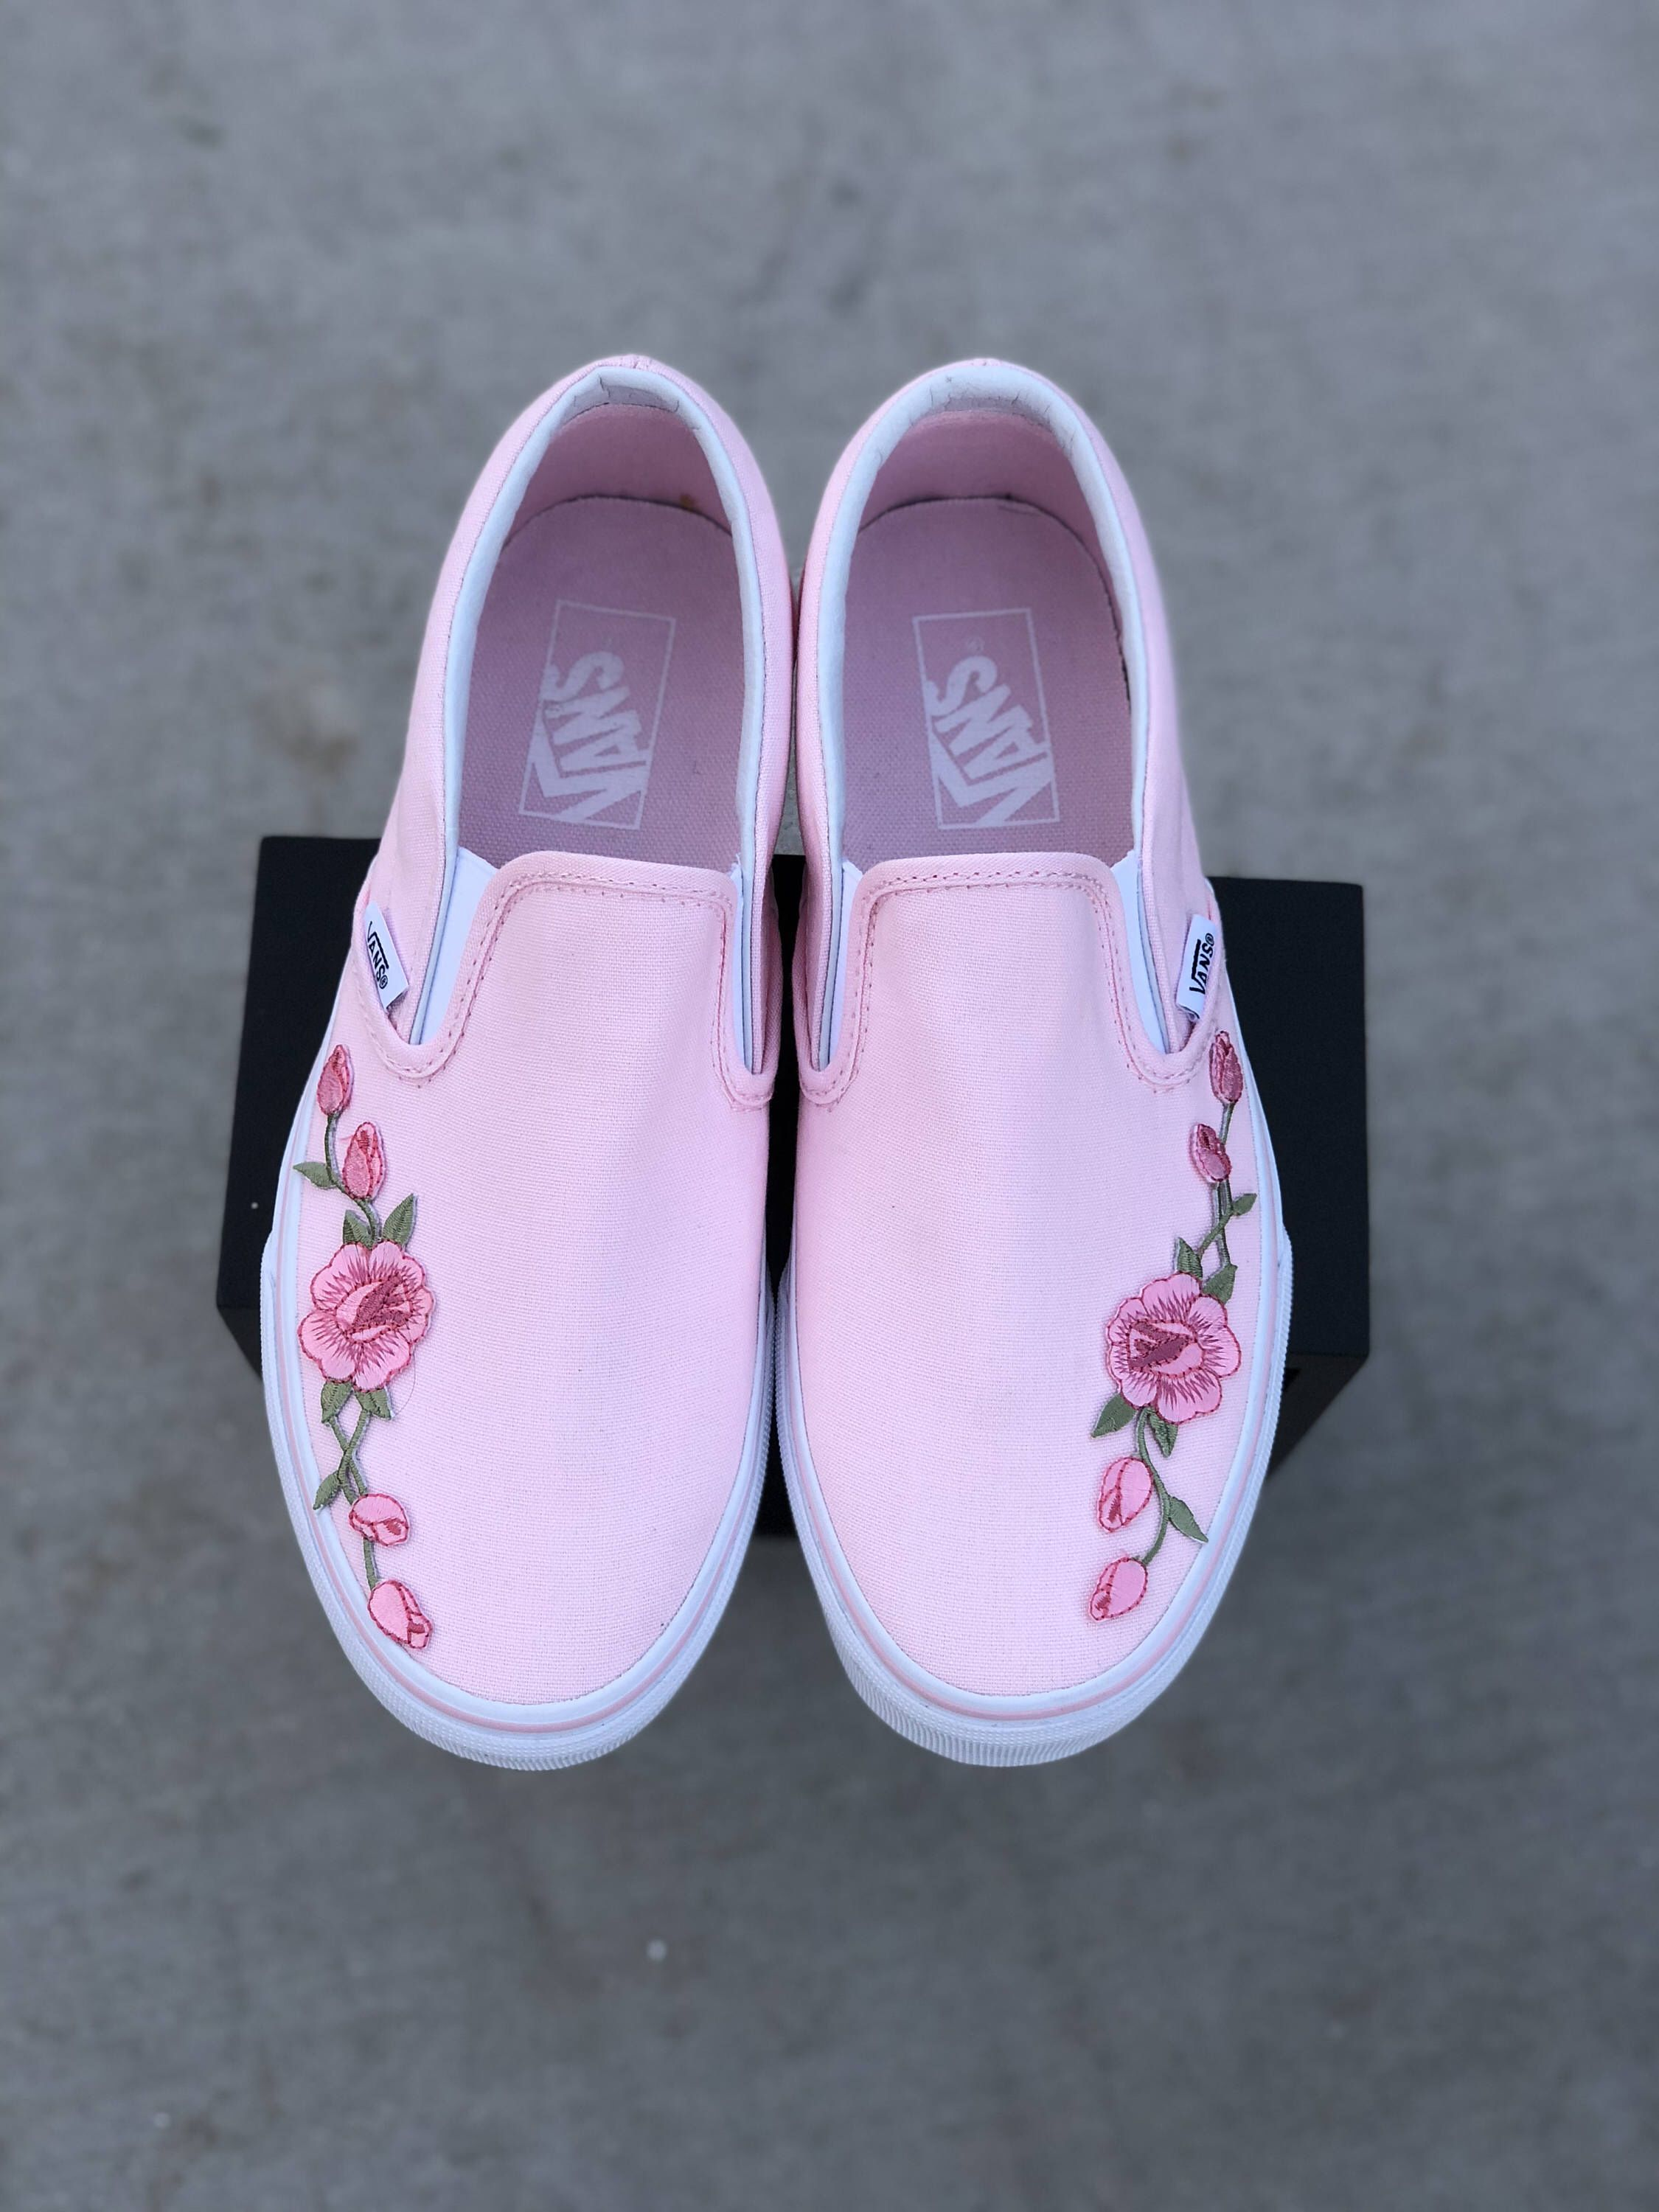 d1f1894b9e6a3 I love the white slip on AMD rose embroidered better but I like these